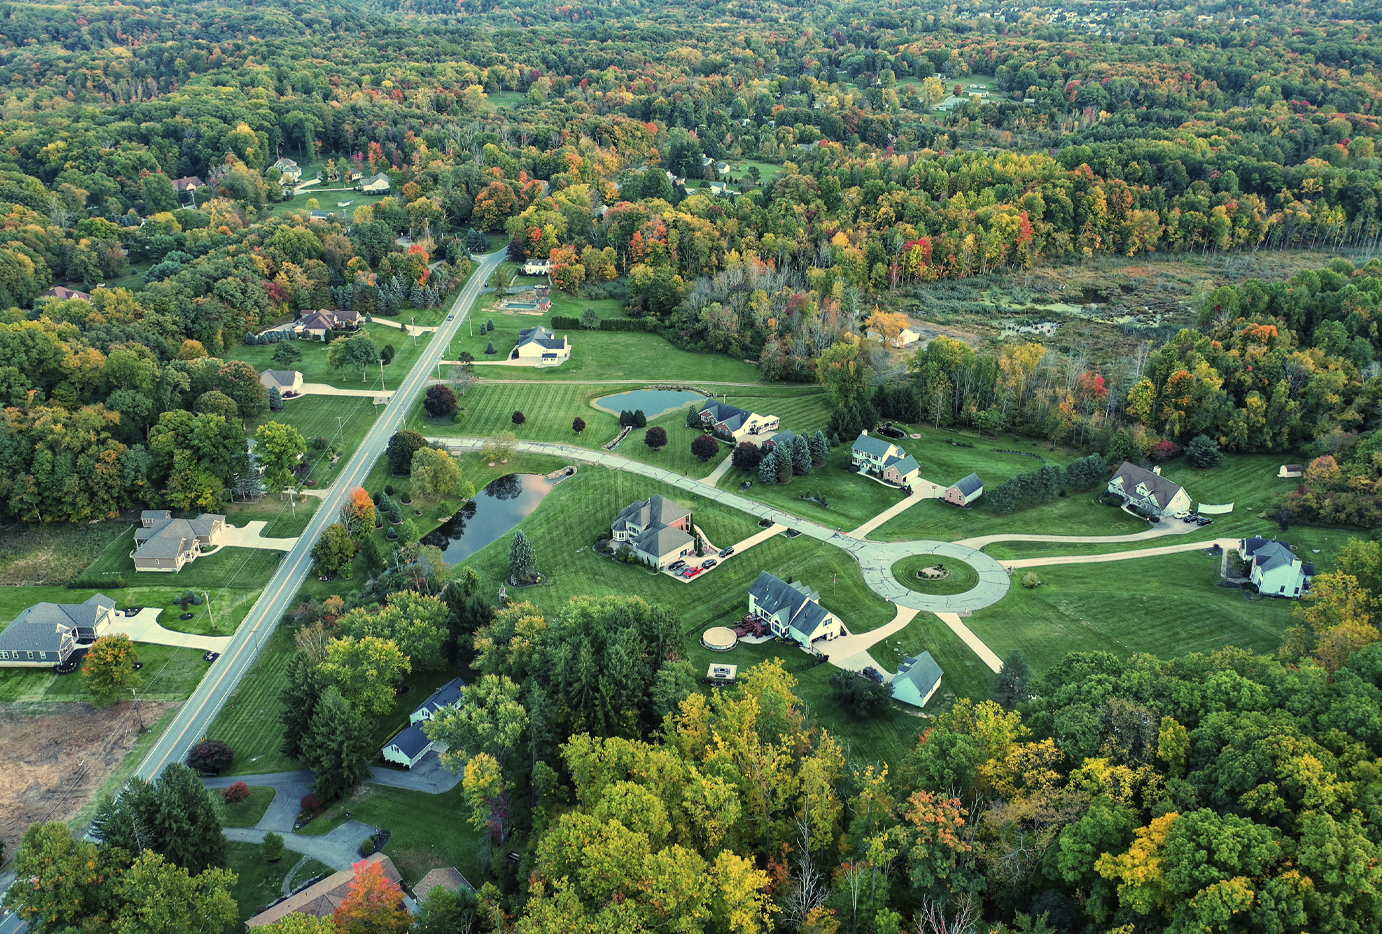 Aerial & Drone Photography service in Ohio 1